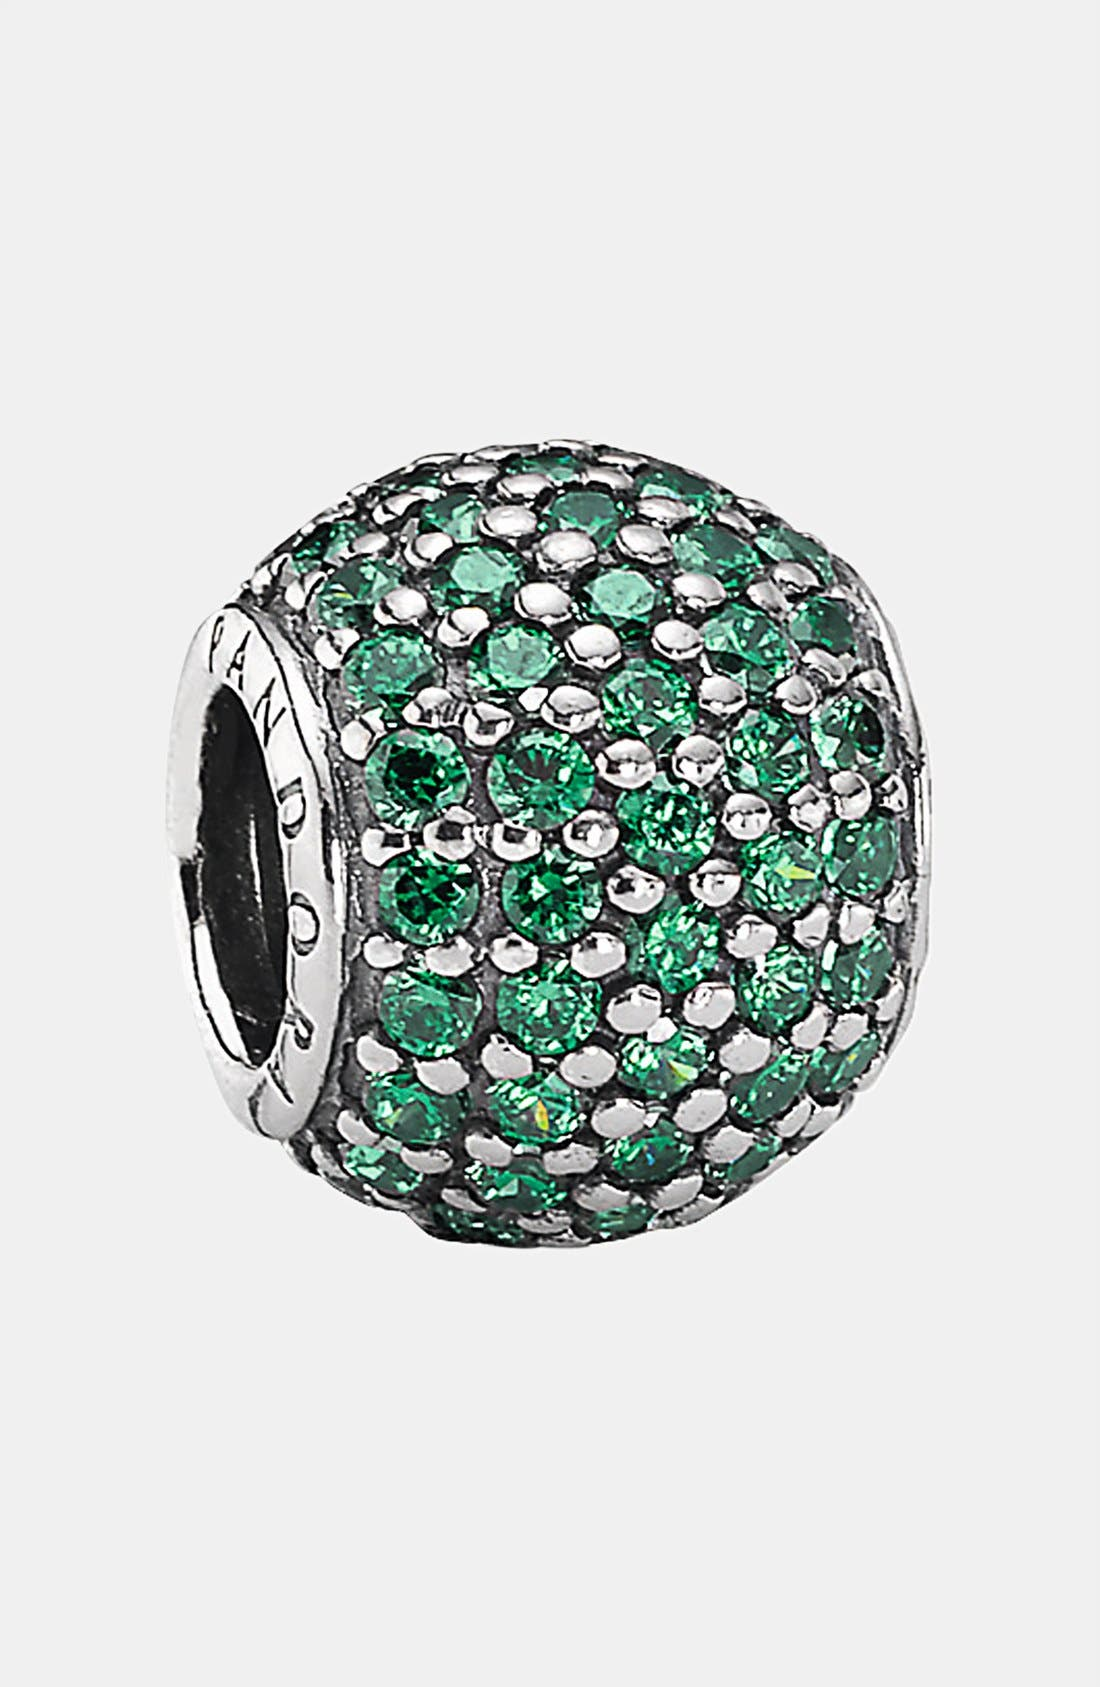 Alternate Image 1 Selected - PANDORA 'Pavé Lights' Bead Charm